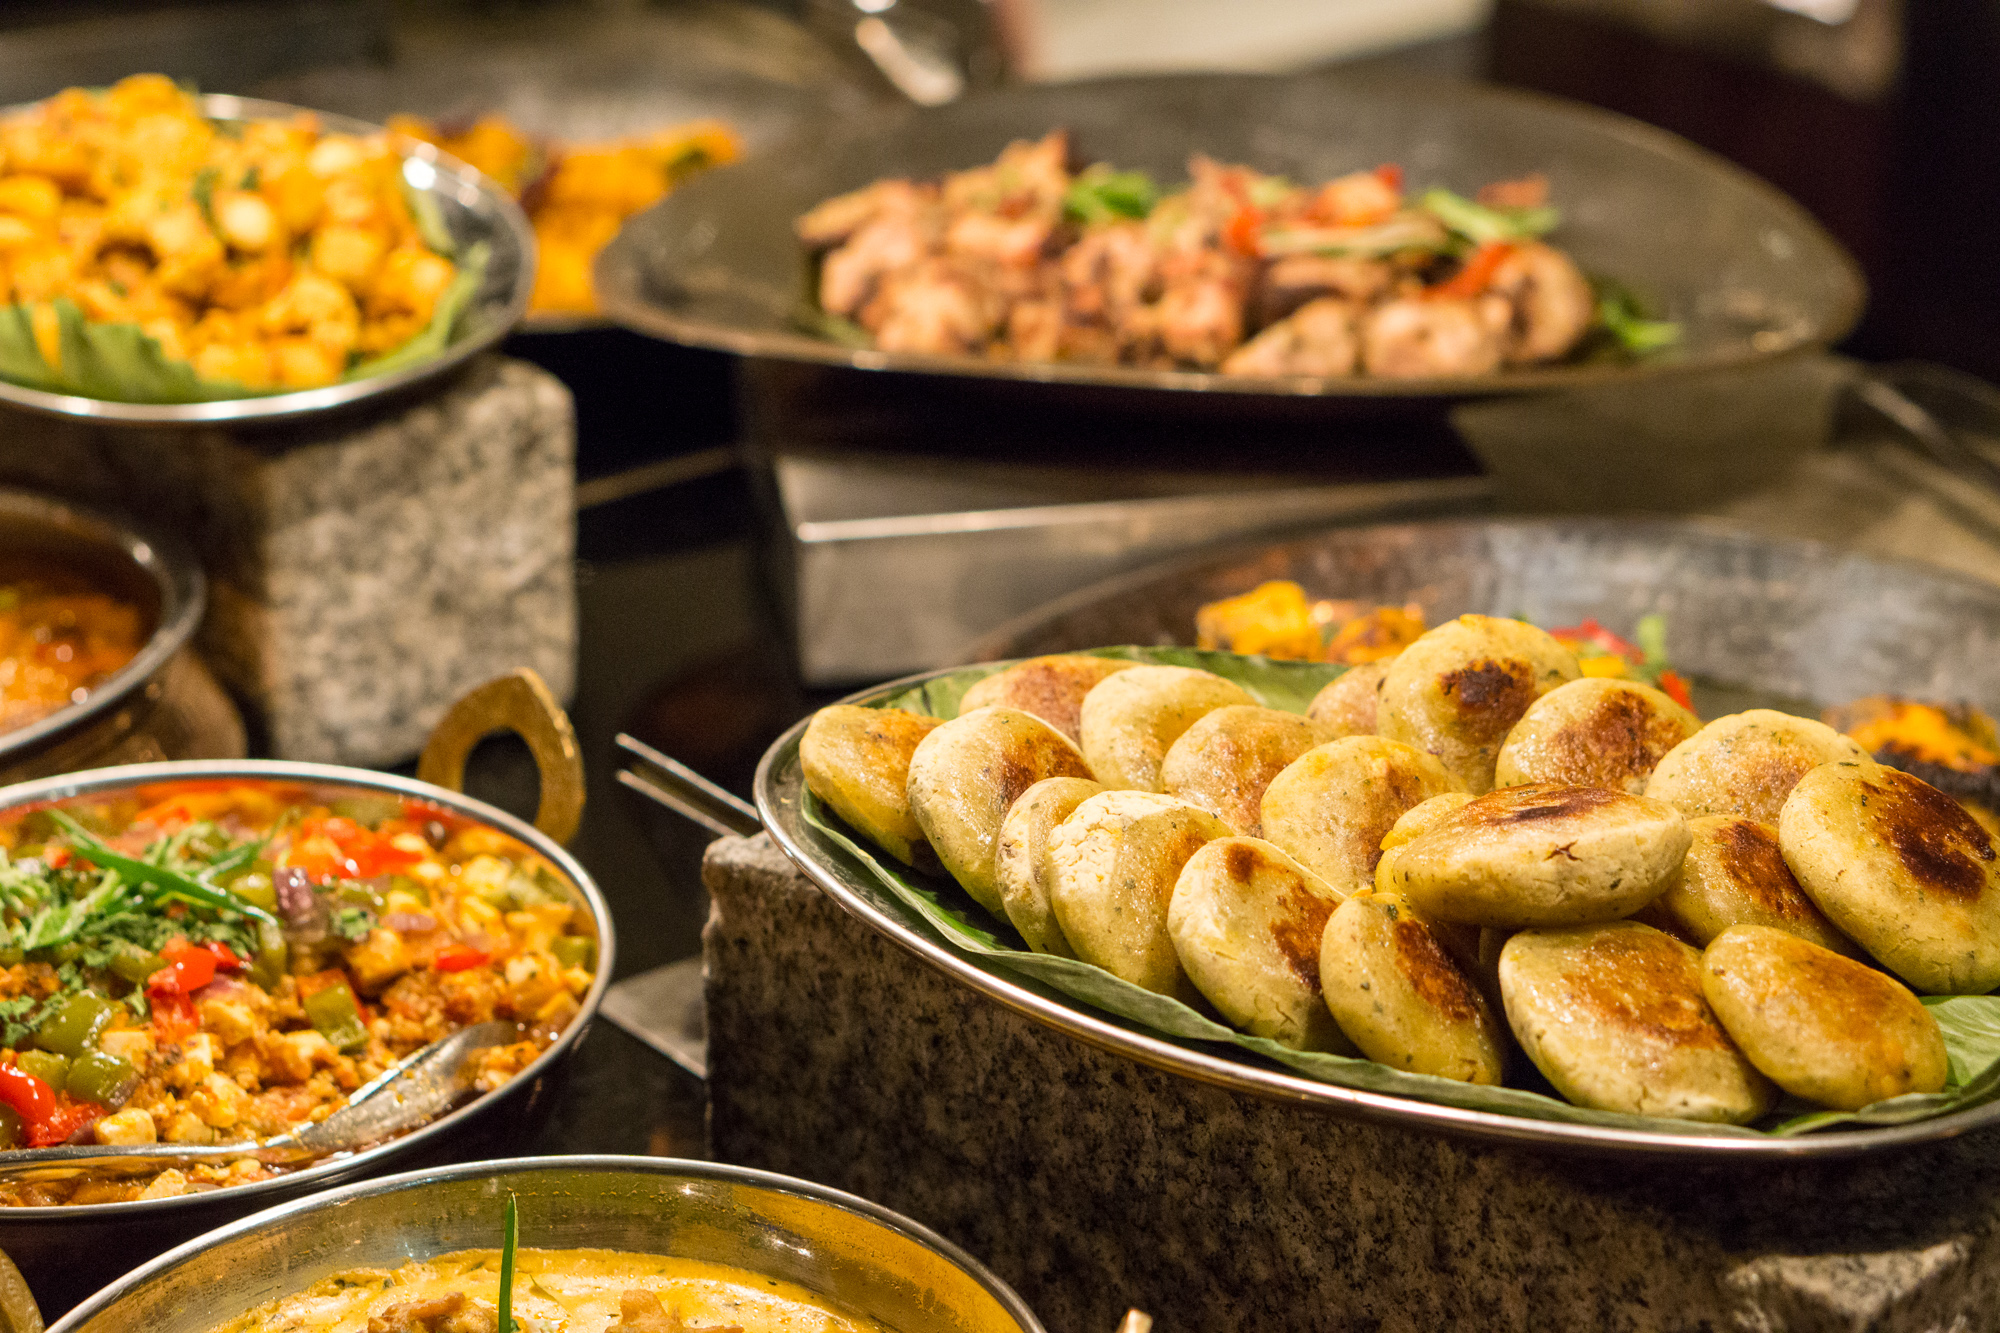 Indian Food Festival at Melt Cafe Mandarin Oriental Singapore - Indian Counter Spread 2